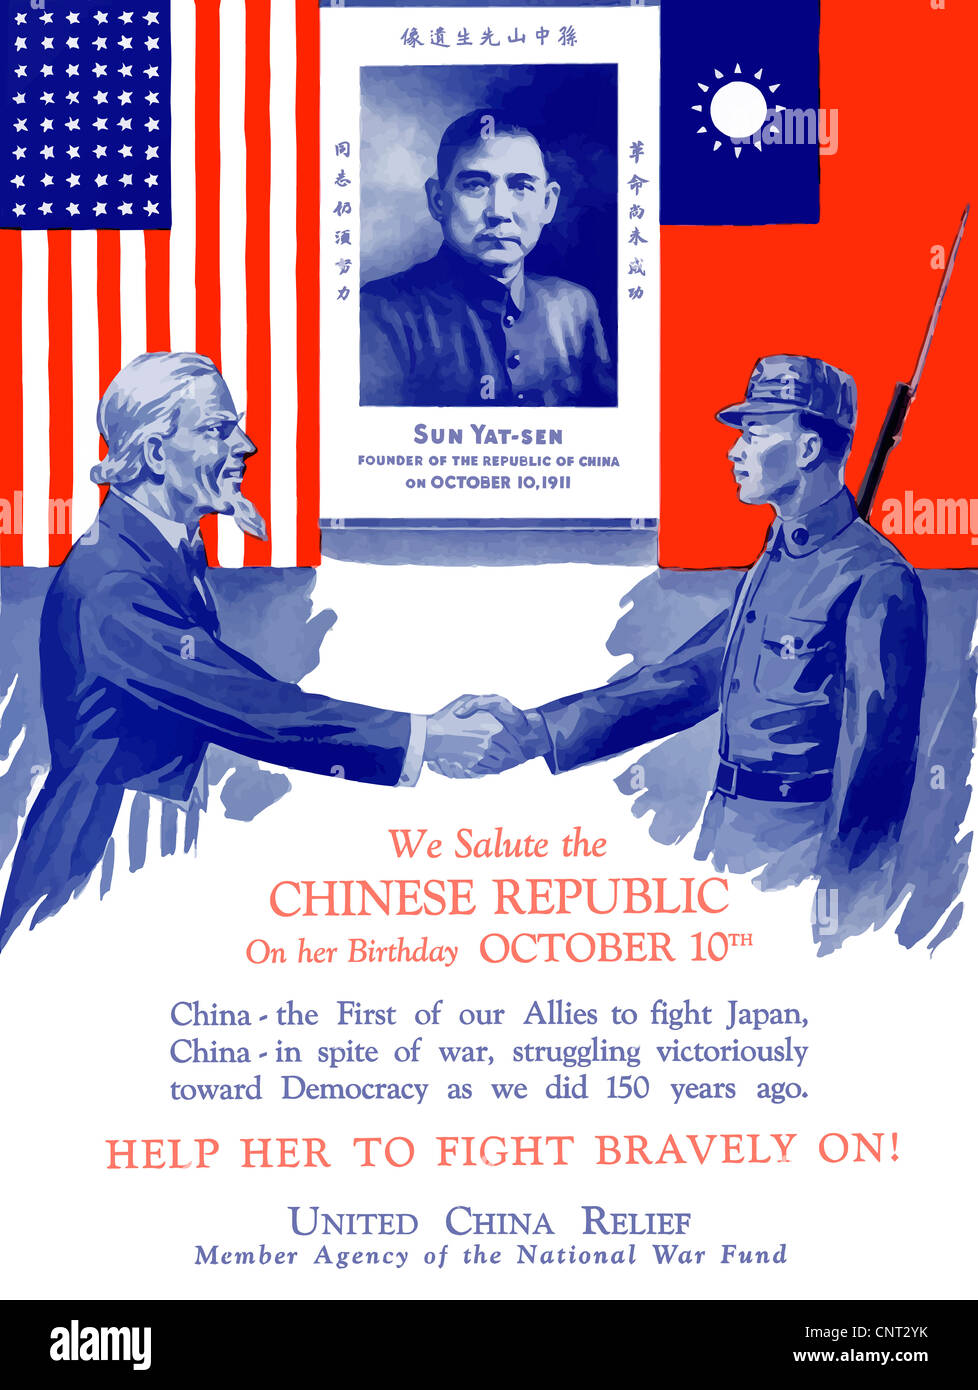 Vintage World War II poster of Uncle Sam shaking hands with a Chinese soldier. - Stock Image